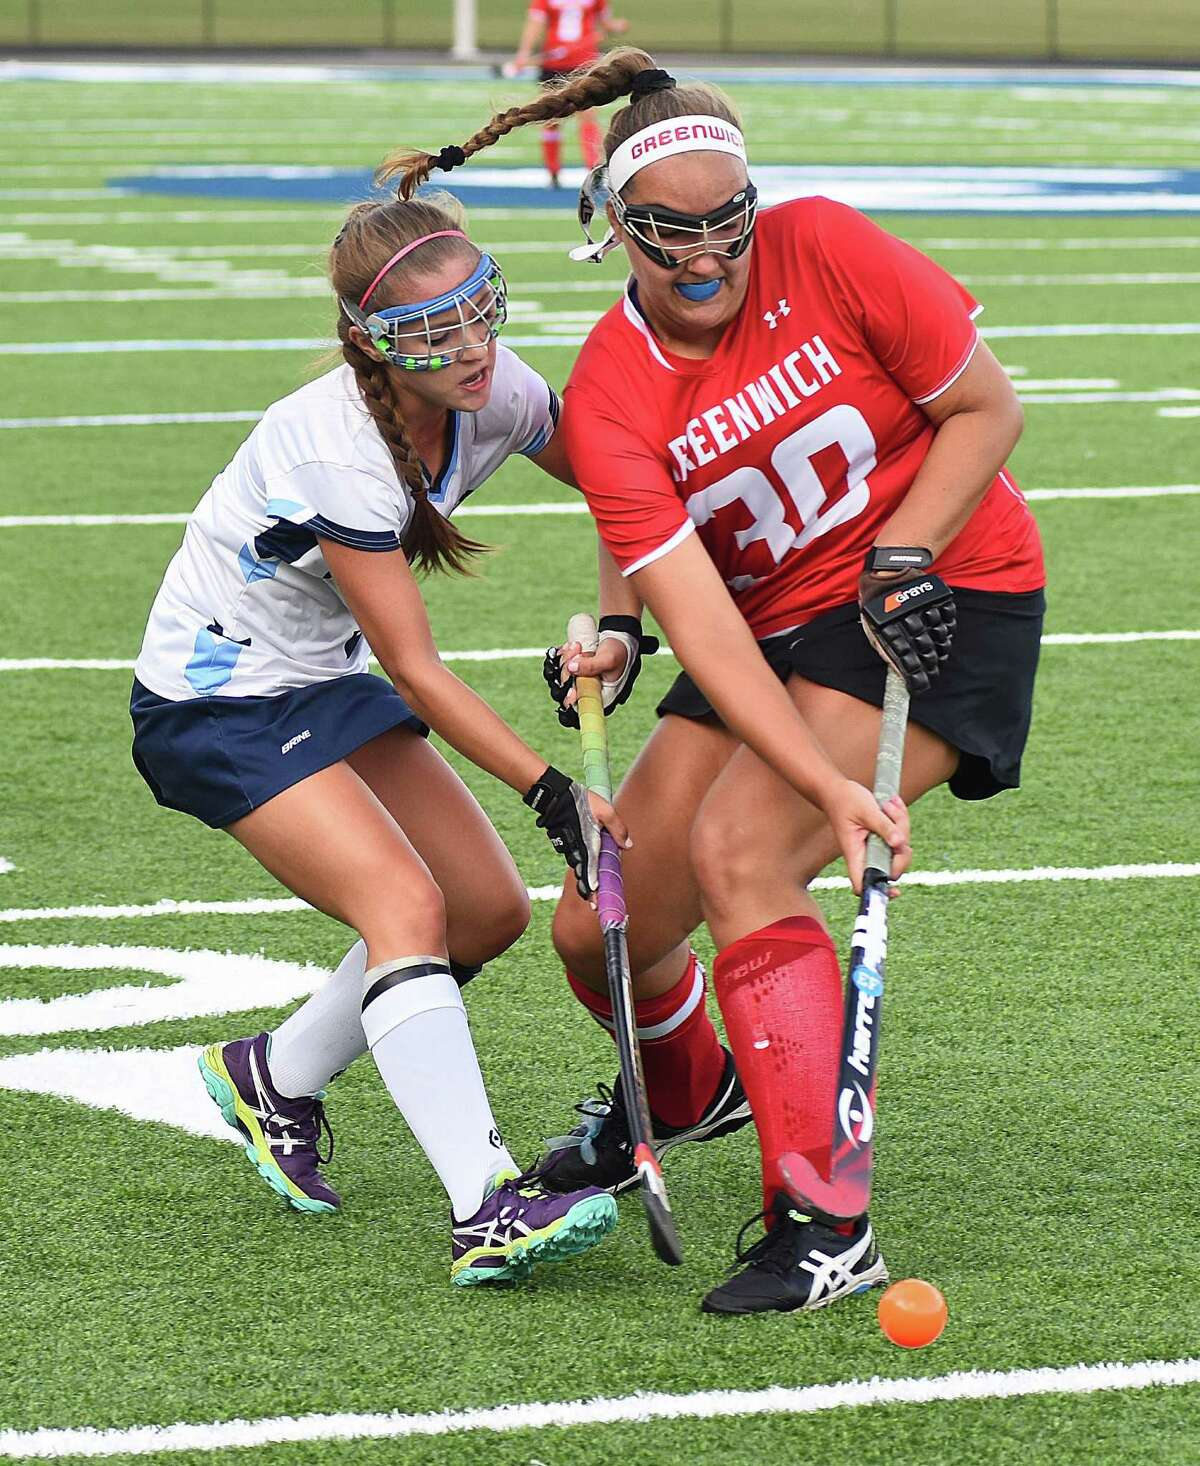 Wilton's Emma Rosen, left, and Greenwich's Emily Anderson come together to play a ball during Tuesday's FCIAC field hockey game at Fujitani Field in Wilton. The host Warriors defeated the Cardinals 4-1.